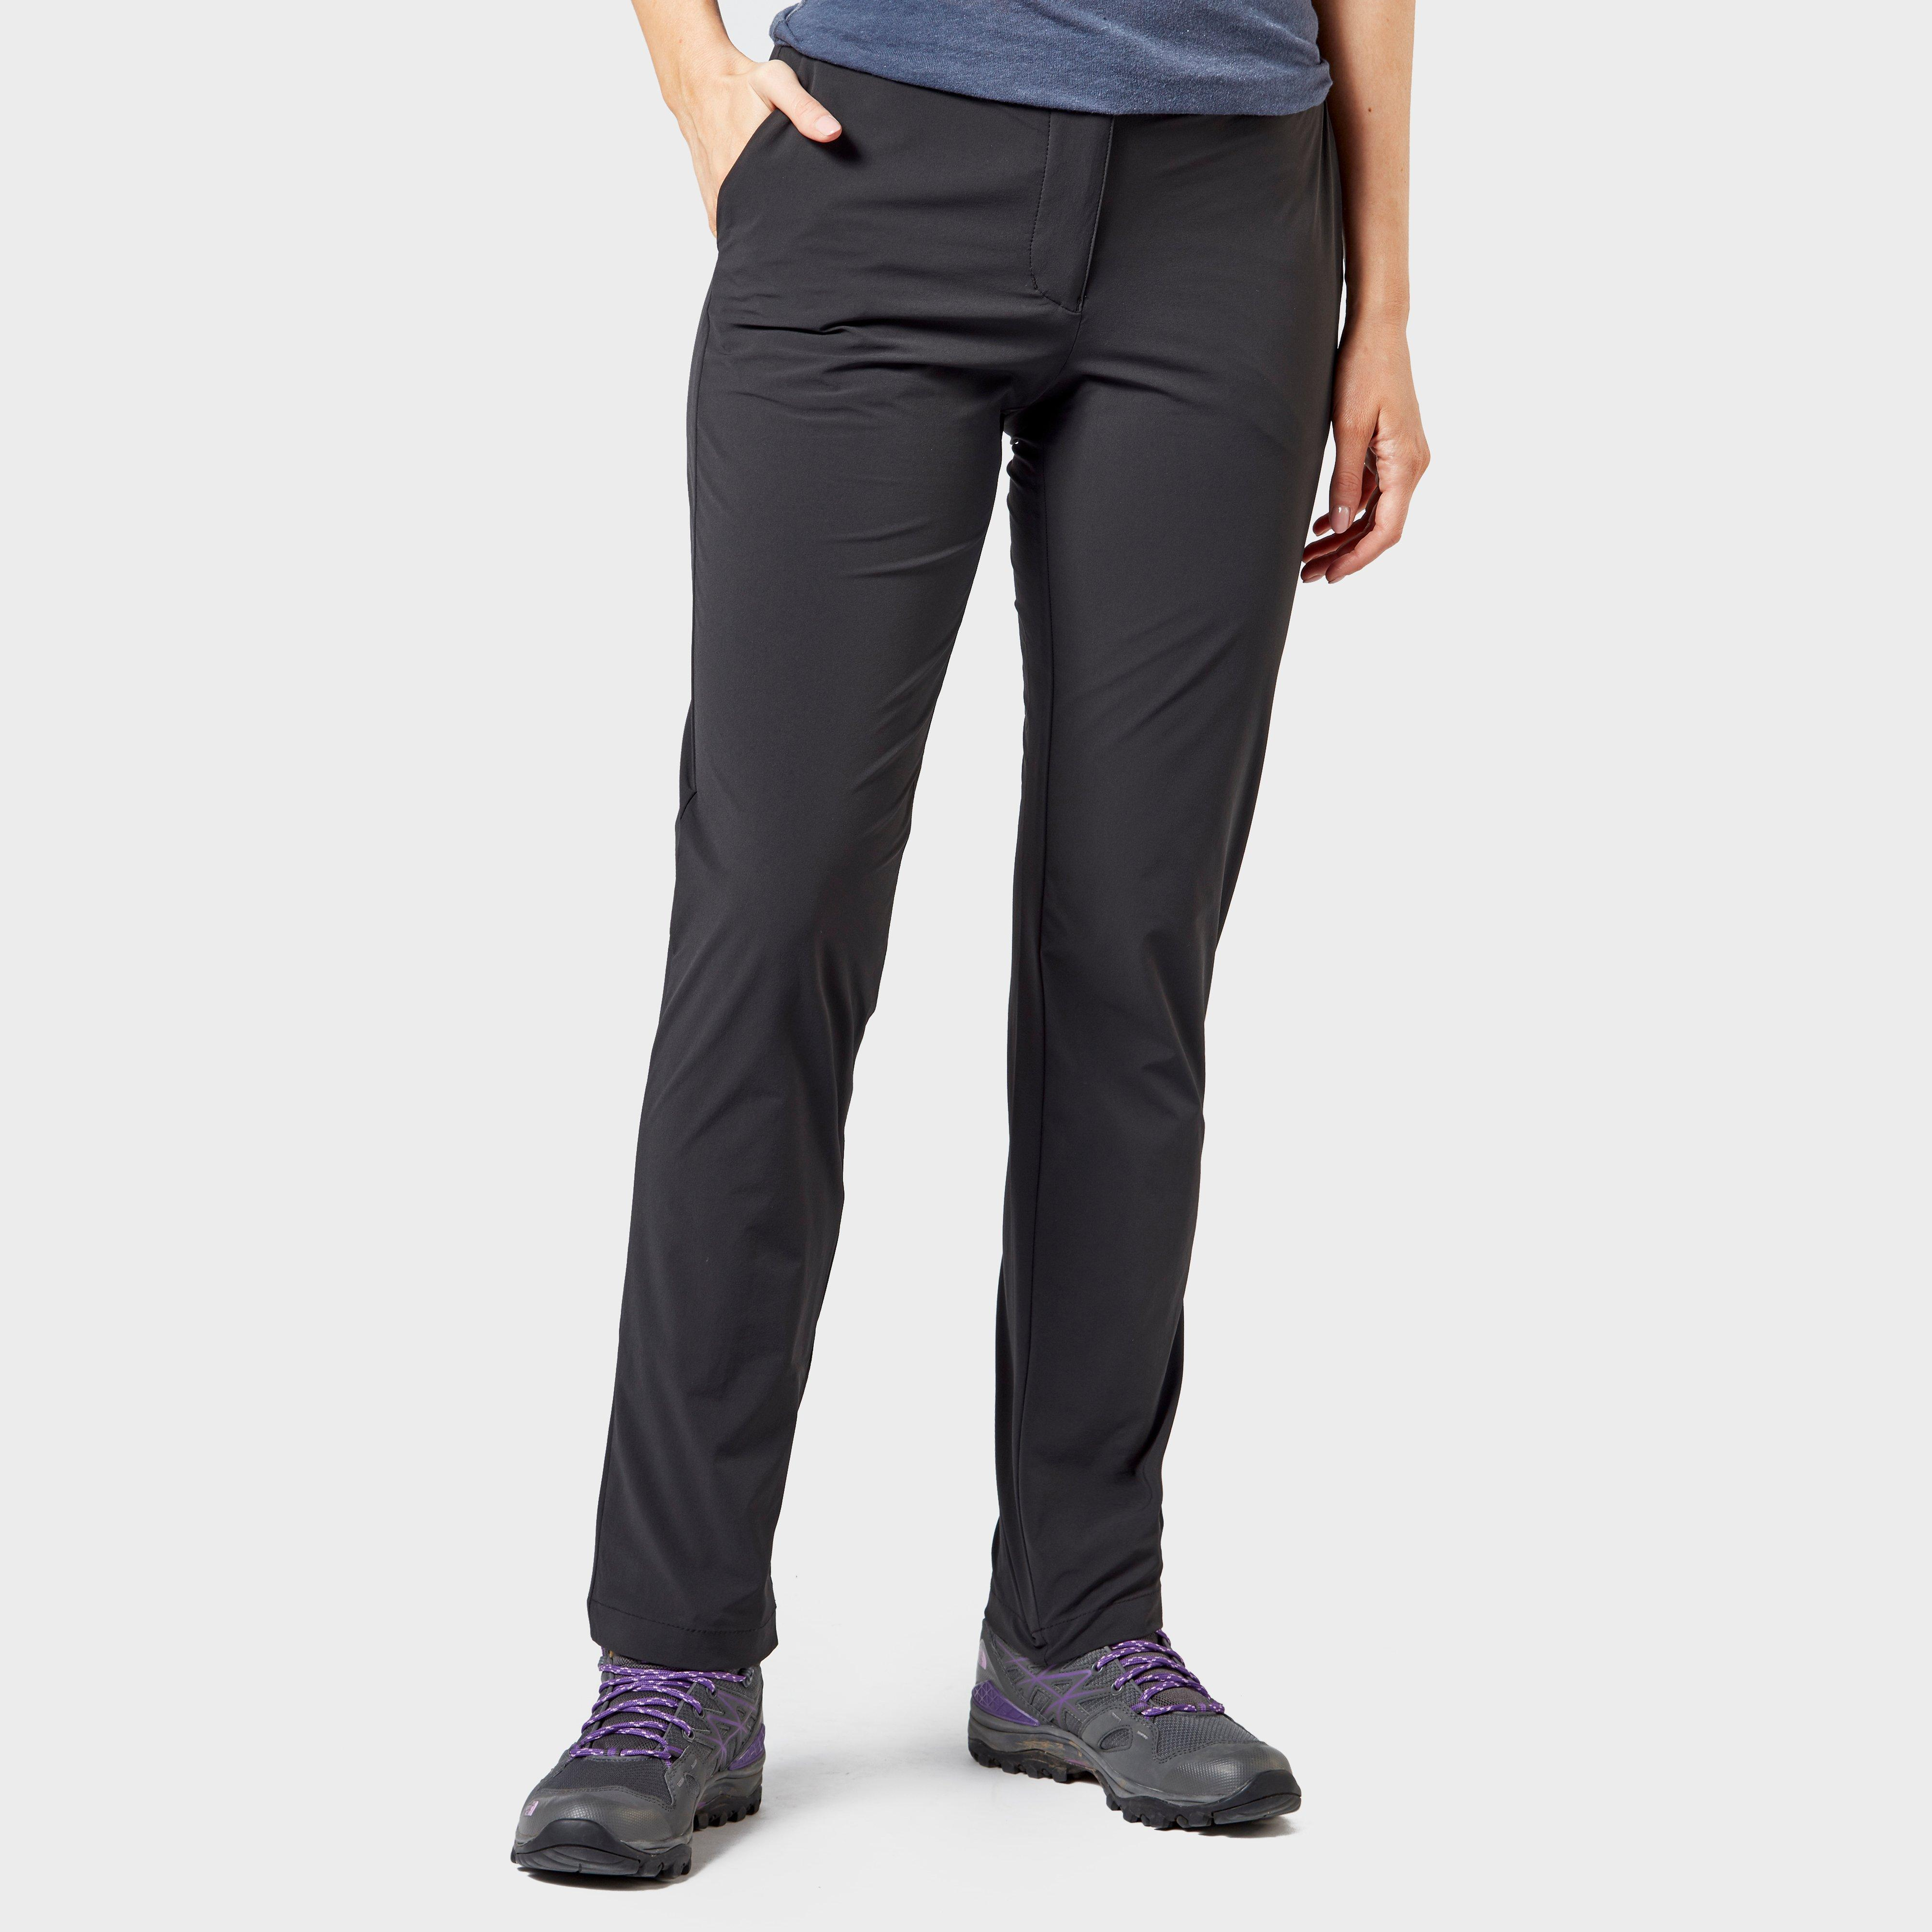 Jack Wolfskin Women's JWP Pants, Black